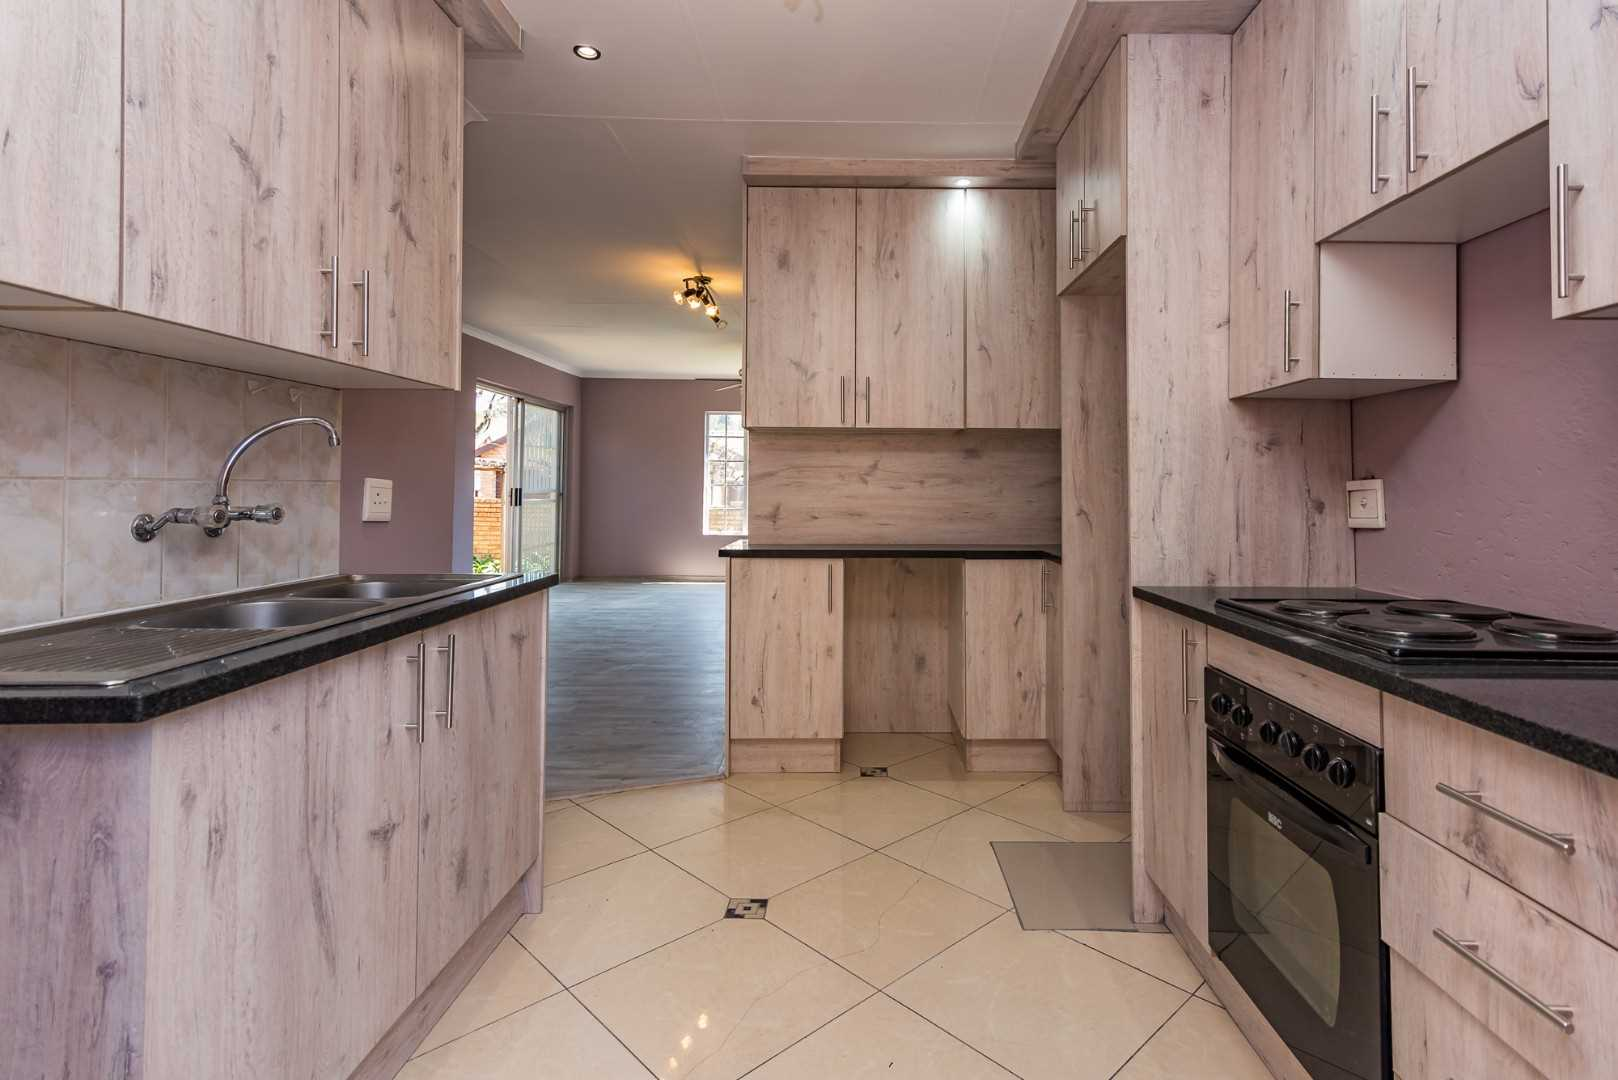 Designer Kitchen leads onto open living areas